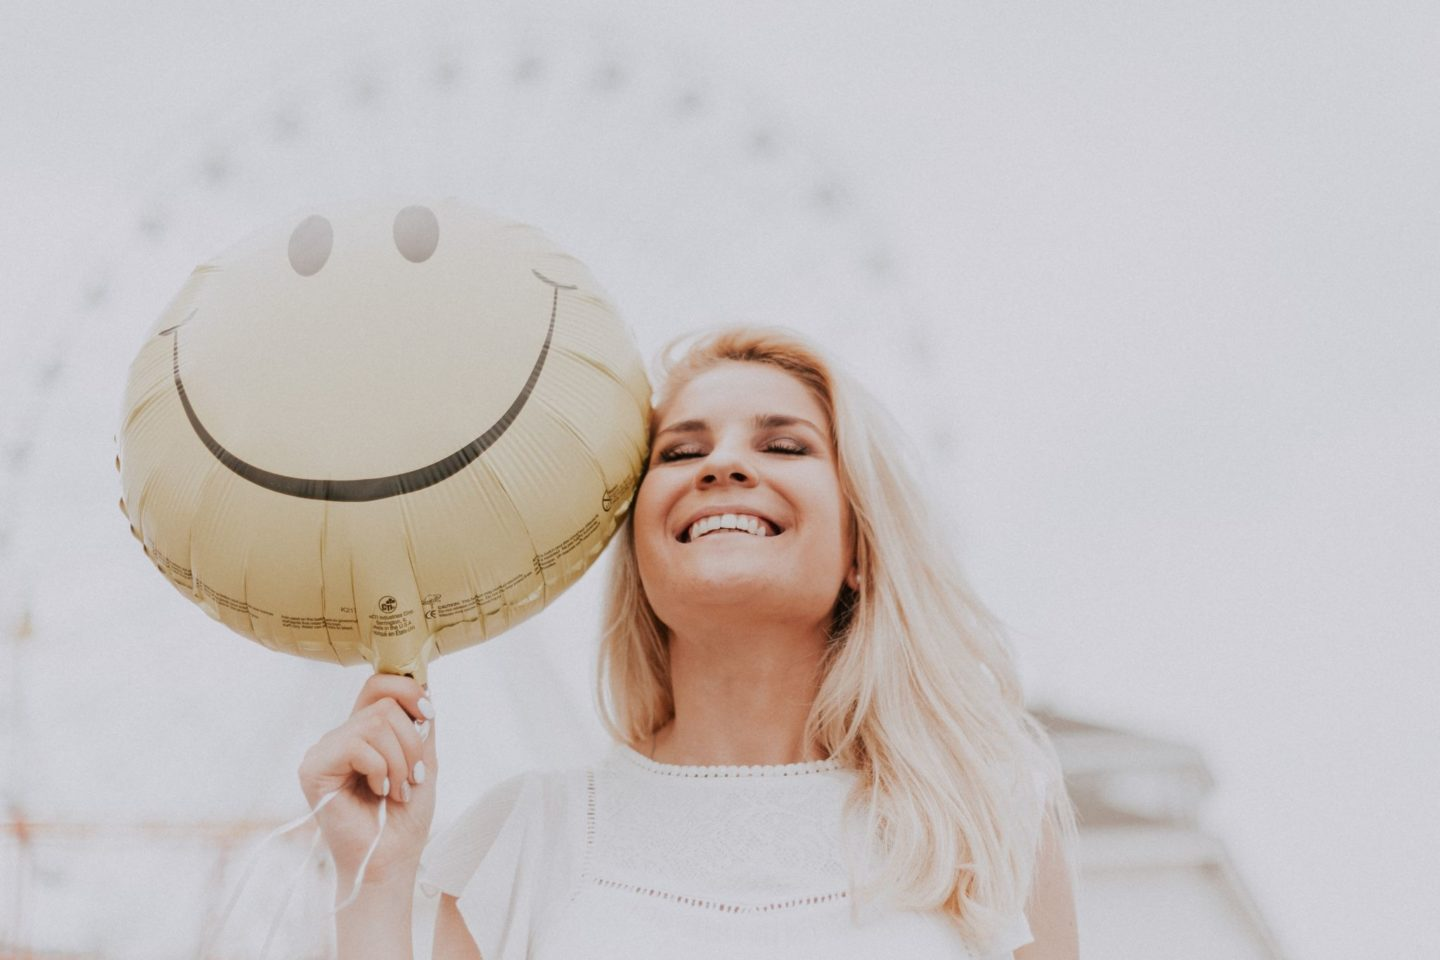 a woman smiling with a balloon despite her day going all wrong.